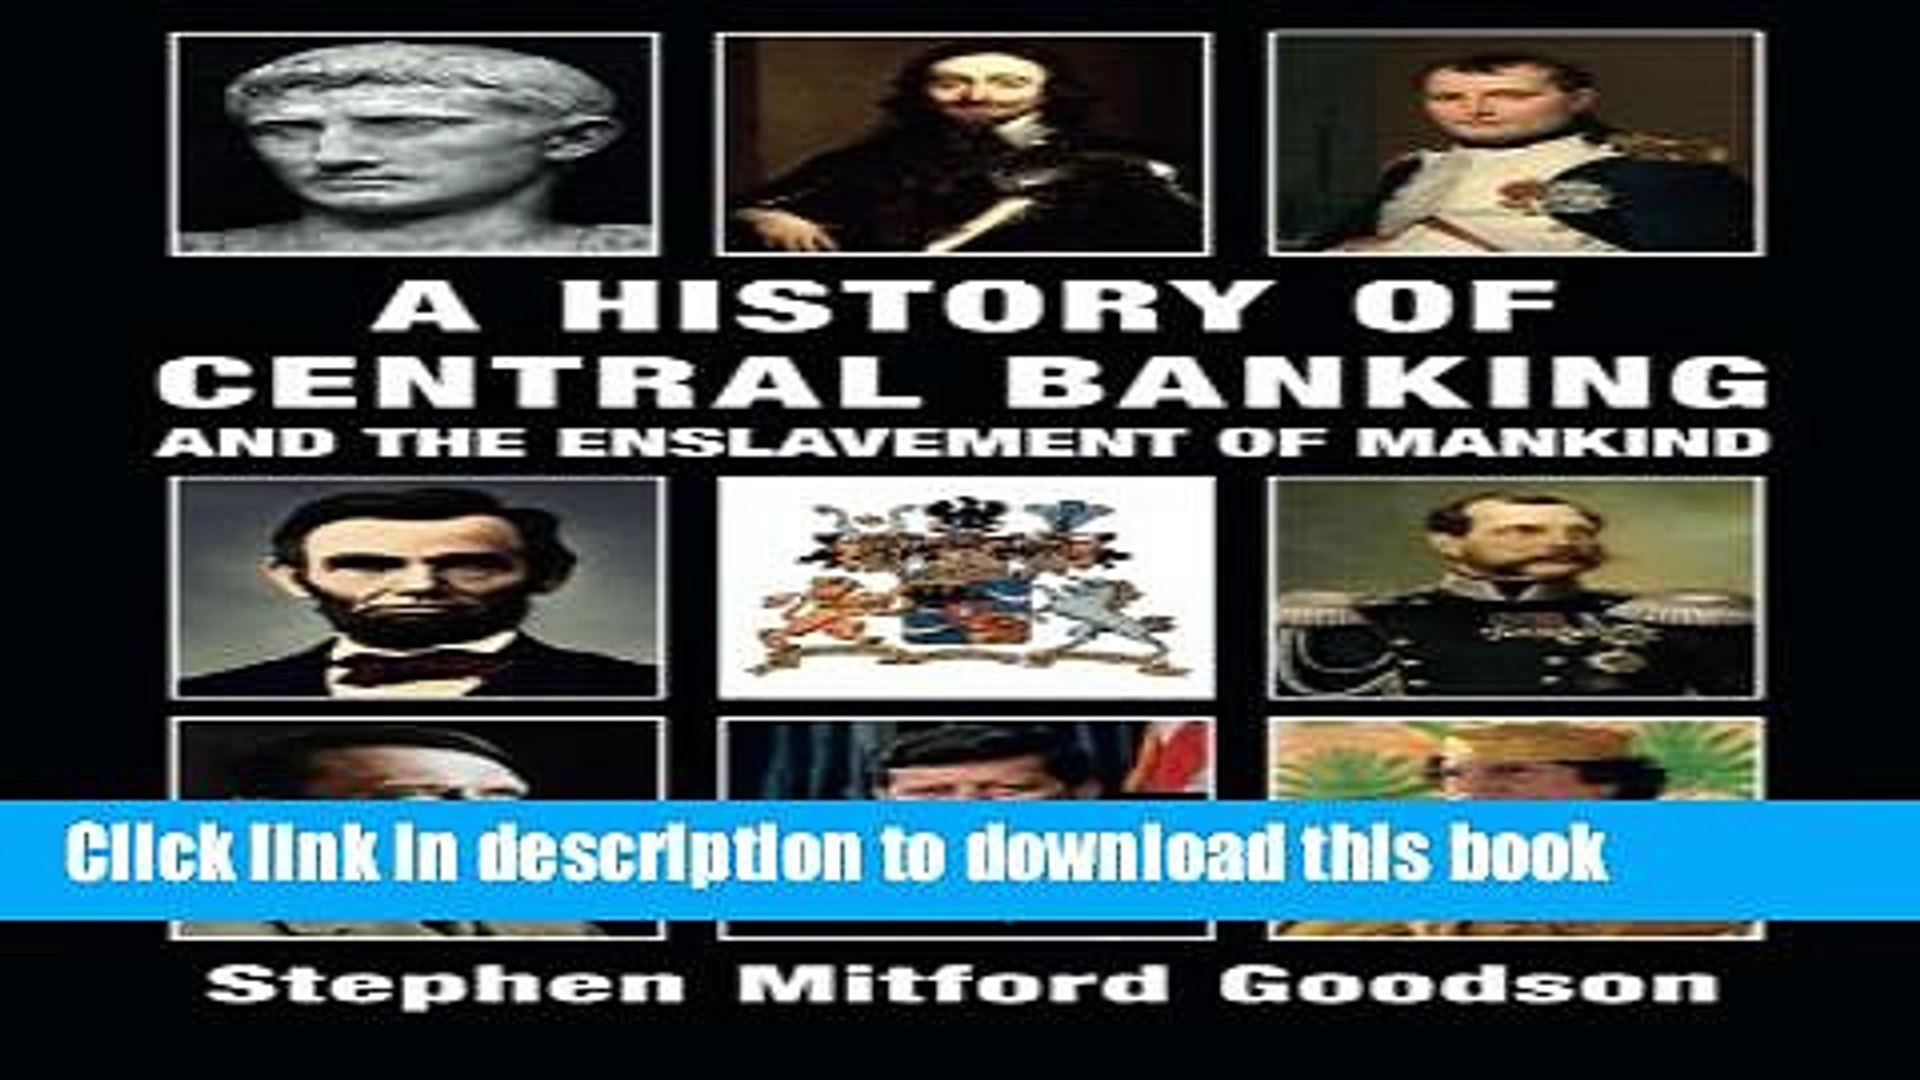 Download  A History of Central Banking and the Enslavement of Mankind  {Free Books|Online